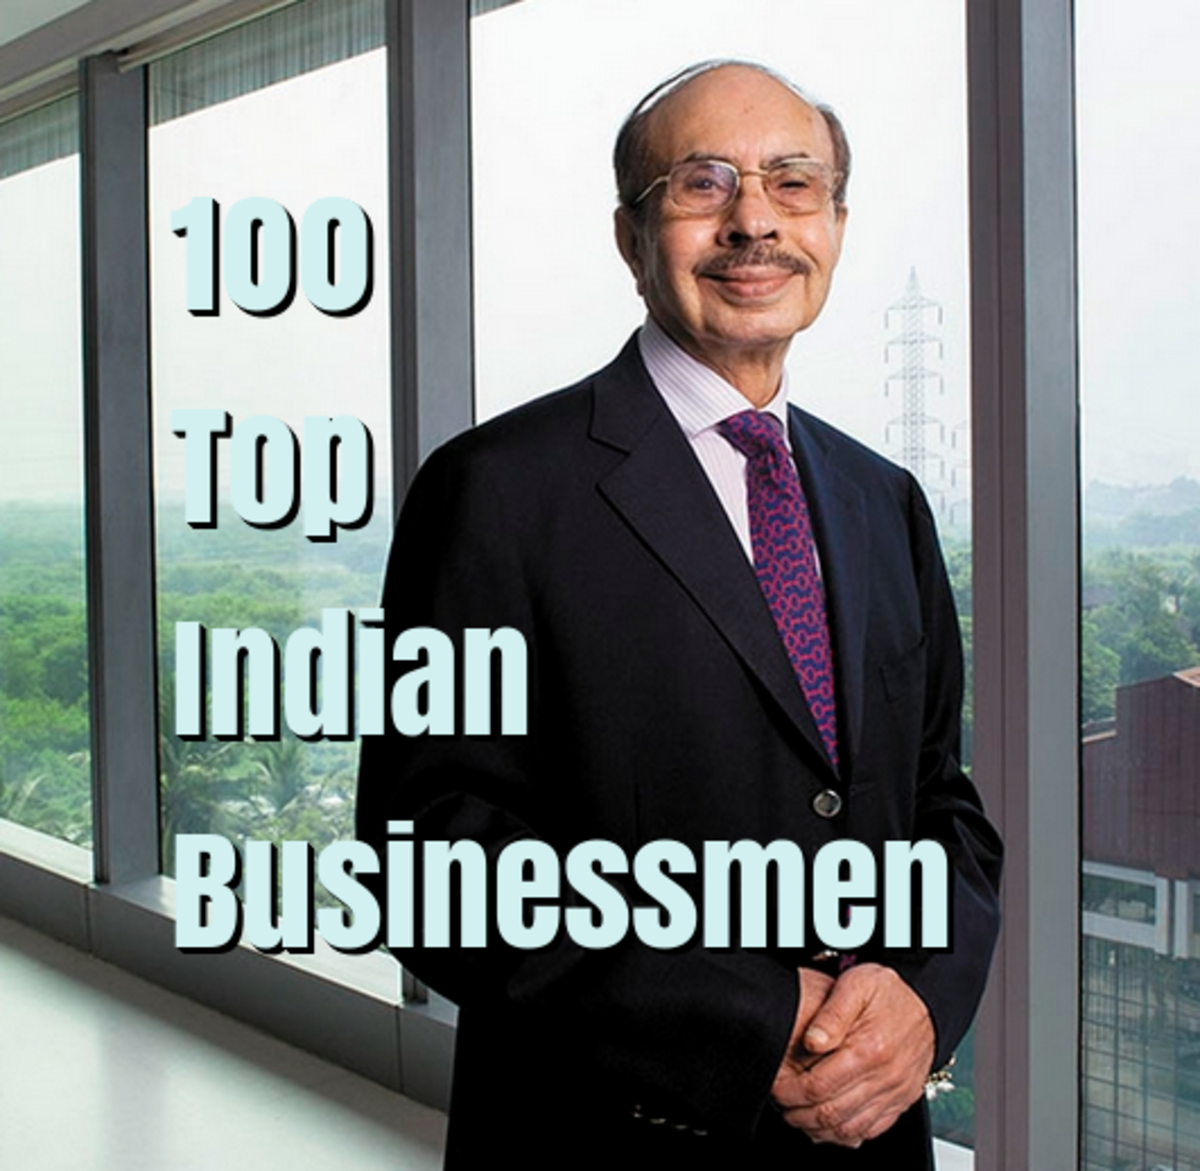 The Top 100 Indian Businessmen and Entrepreneurs